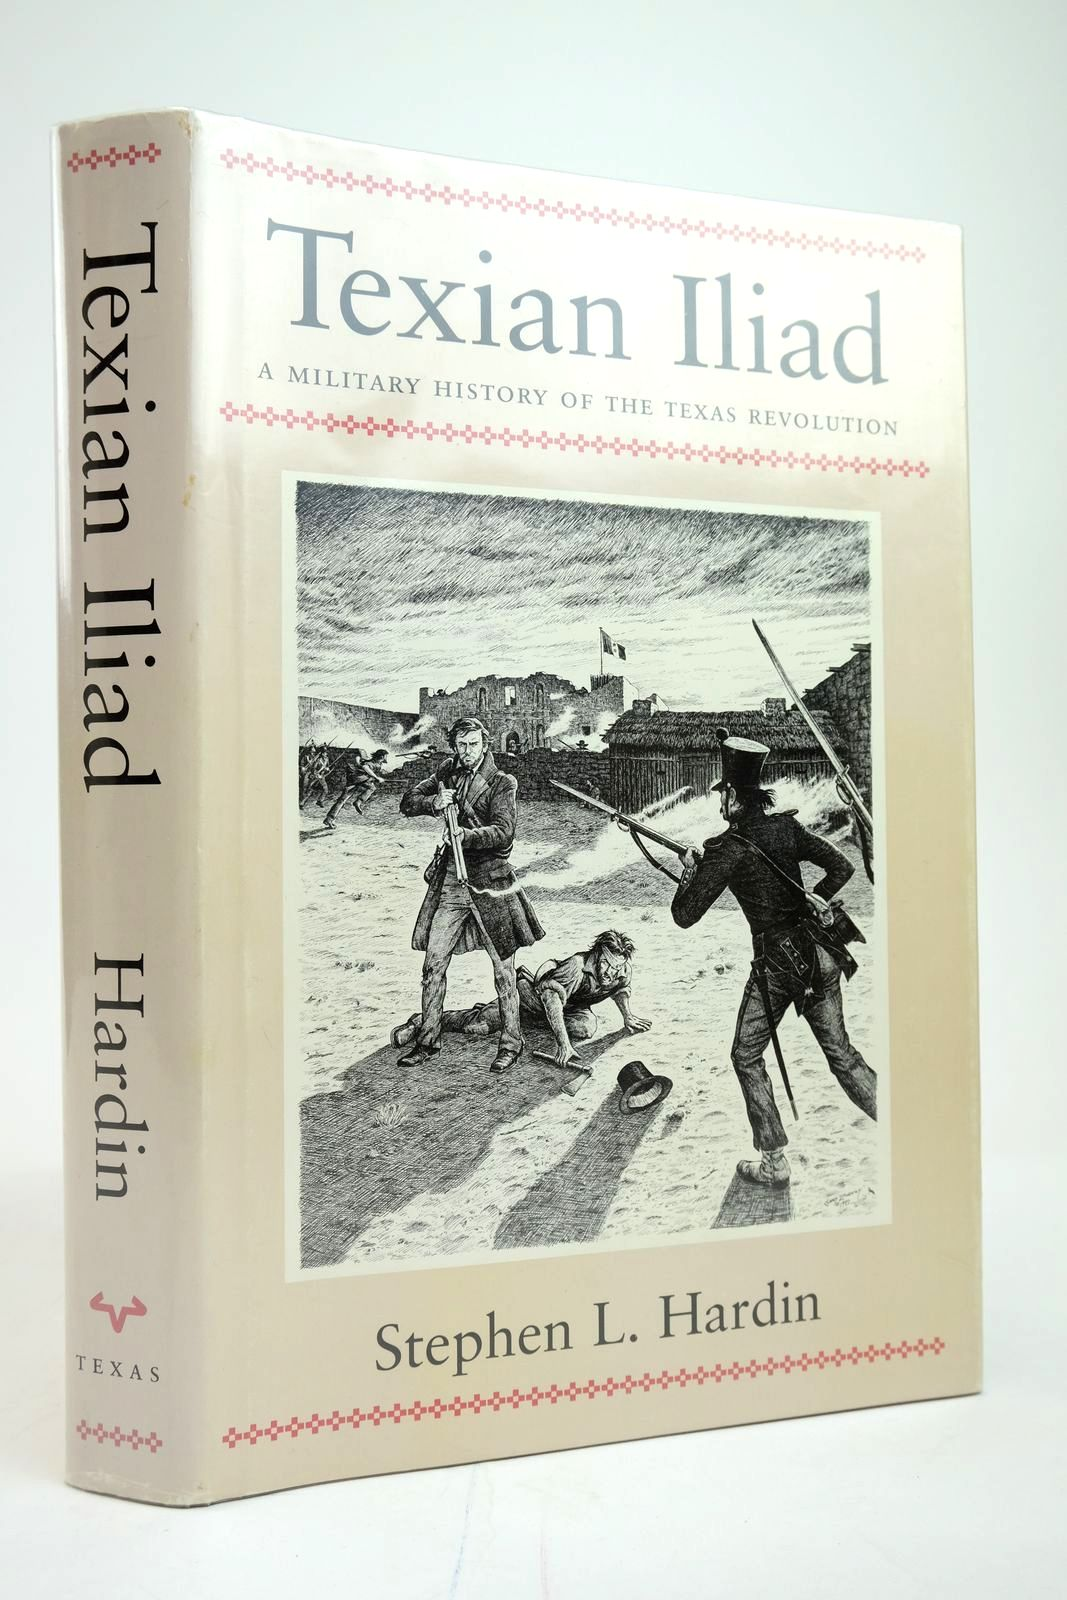 Photo of TEXIAN ILIAD: A MILITARY HISTORY OF THE TEXAS REVOLUTION, 1835-1836 written by Hardin, Stephen L. illustrated by Zaboly, Gary S. published by University of Texas Press (STOCK CODE: 2135295)  for sale by Stella & Rose's Books